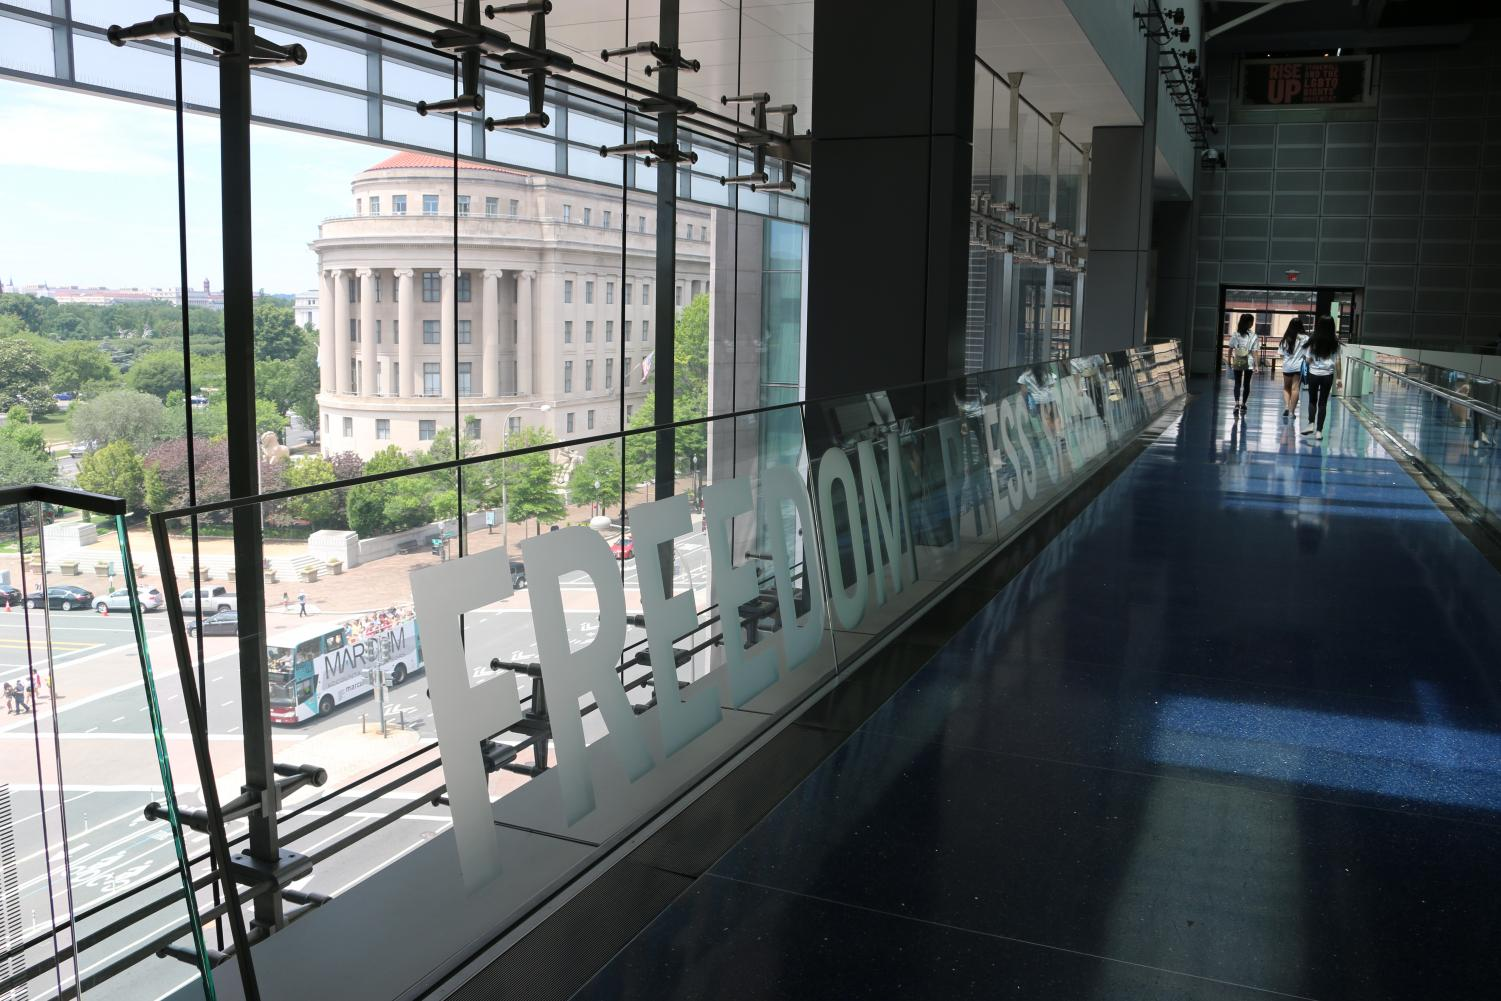 The Newseum may no longer exist, but its spirit and dedication to exceptional journalism has inspired generations of Americans to value the freedom of speech, expression and press.